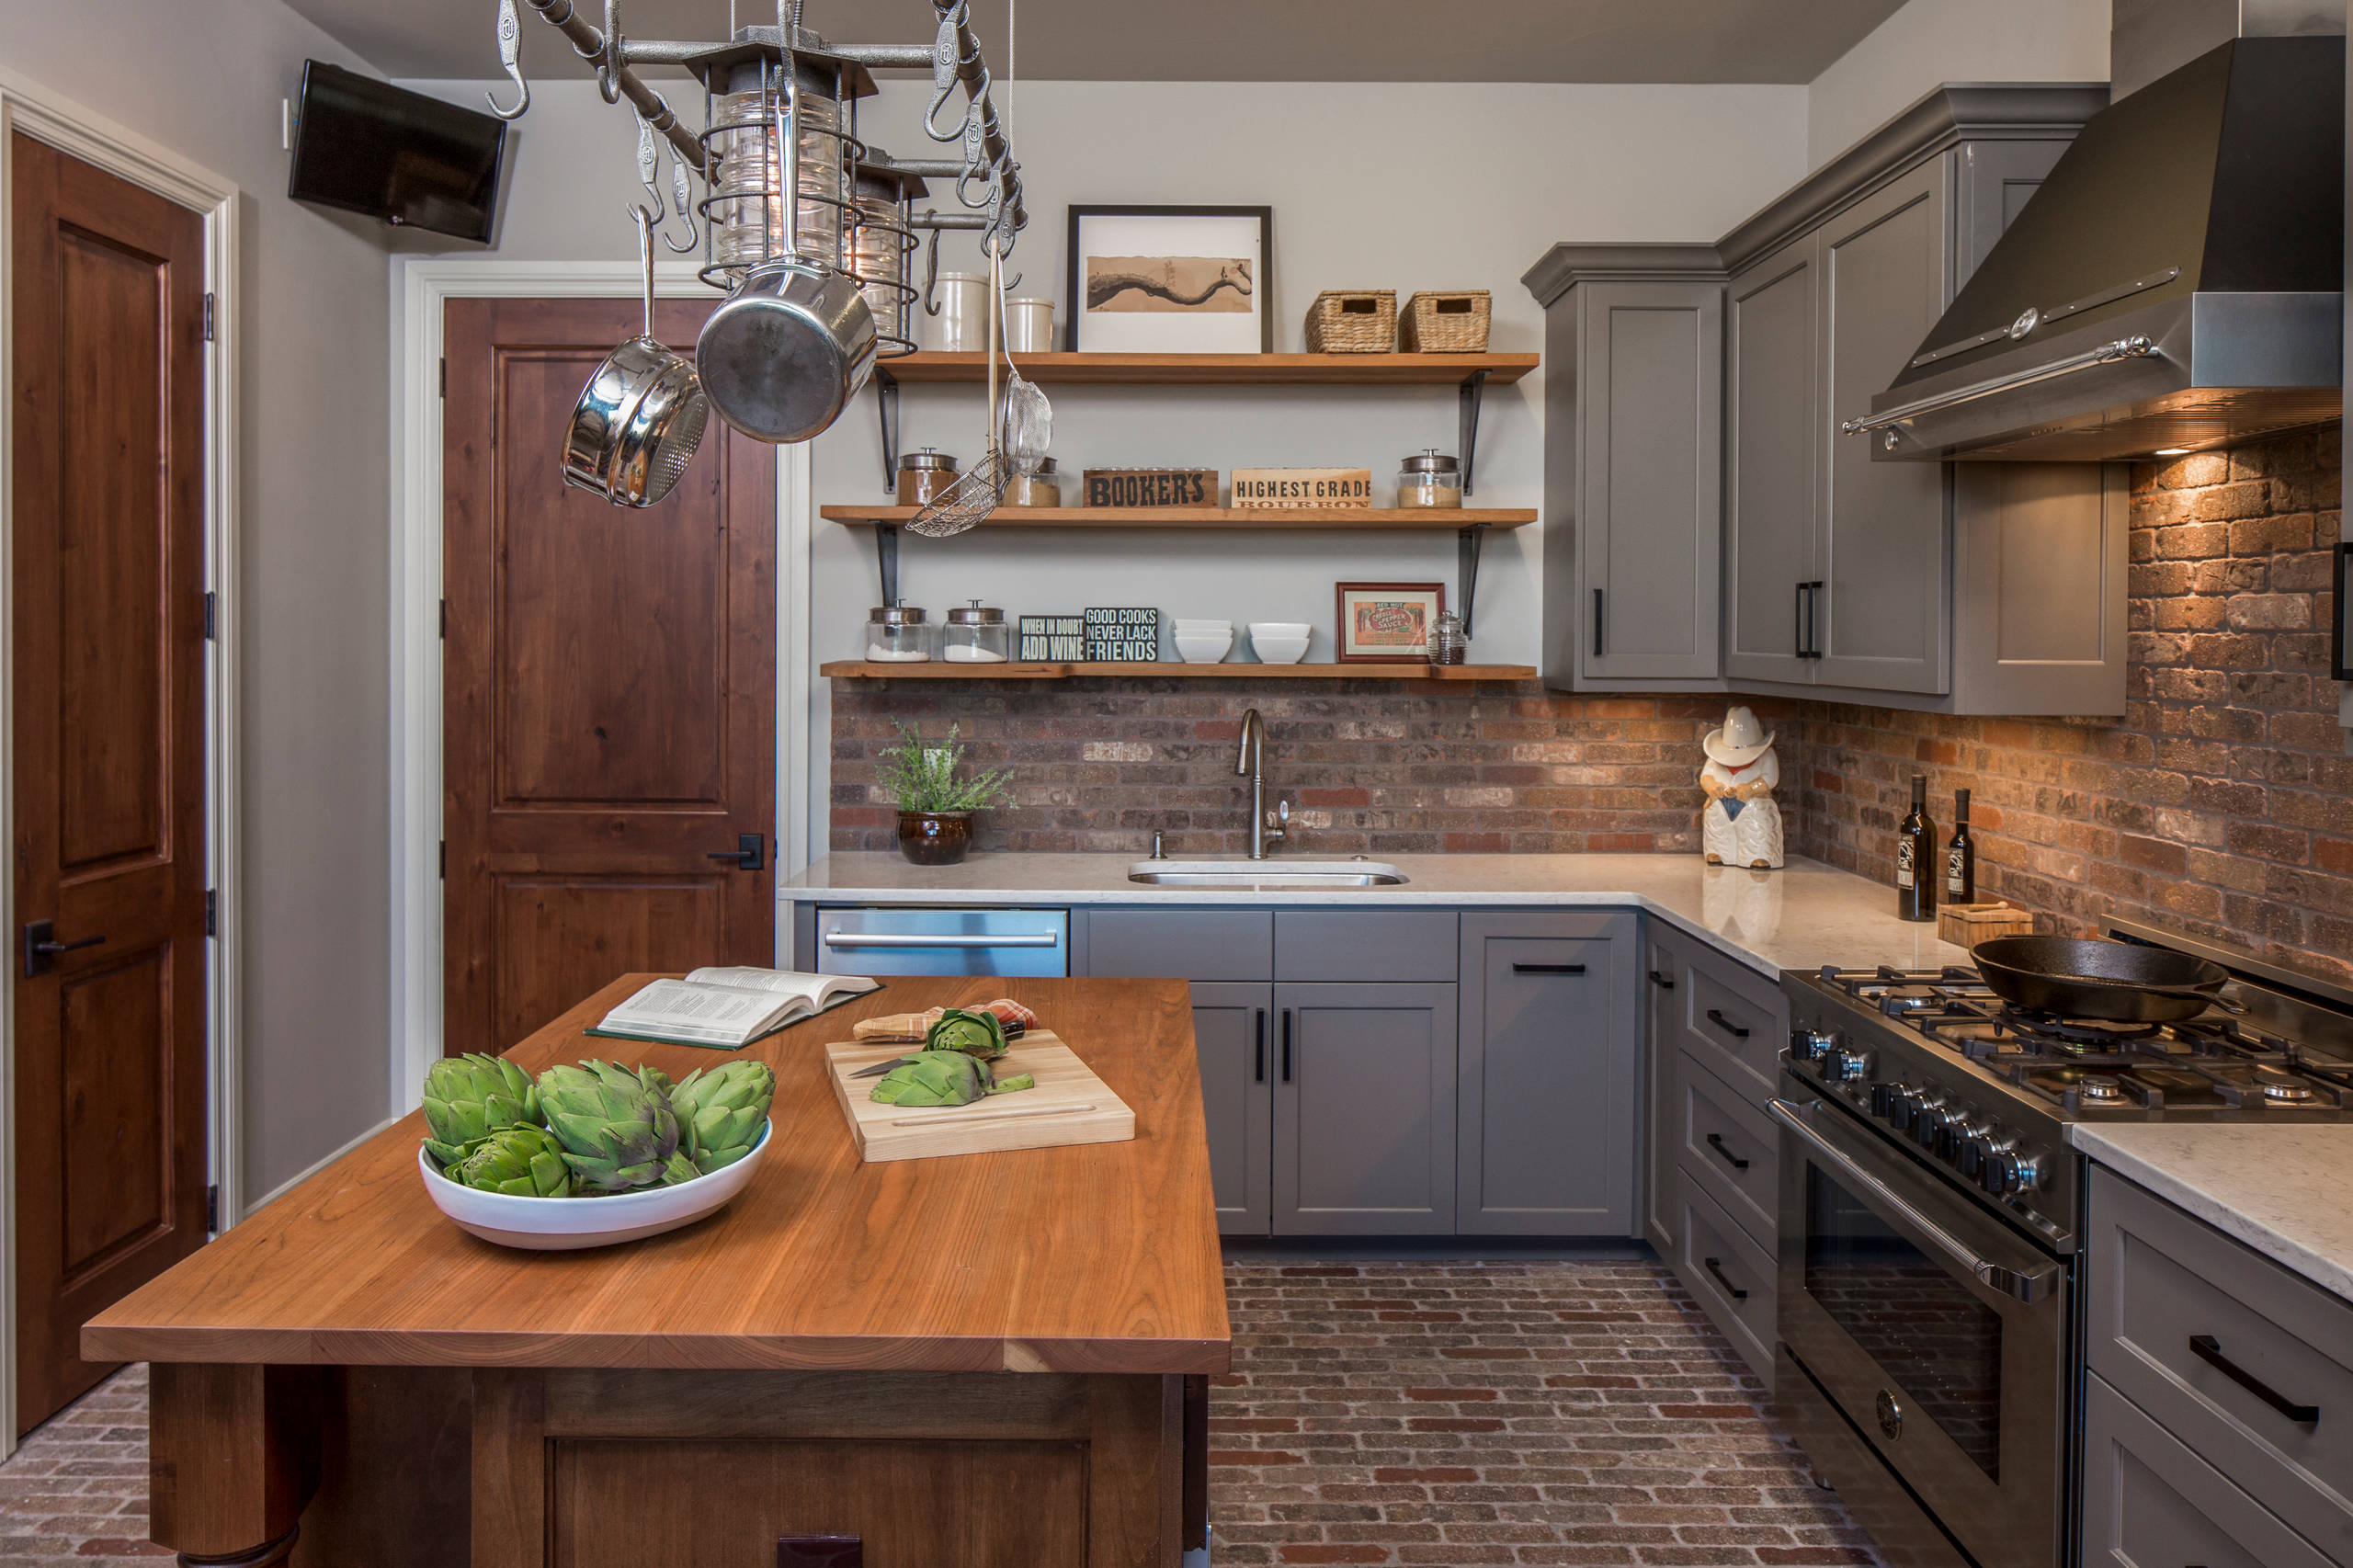 compromise-kitchen-with-open-shelving-and-wall-cabinets